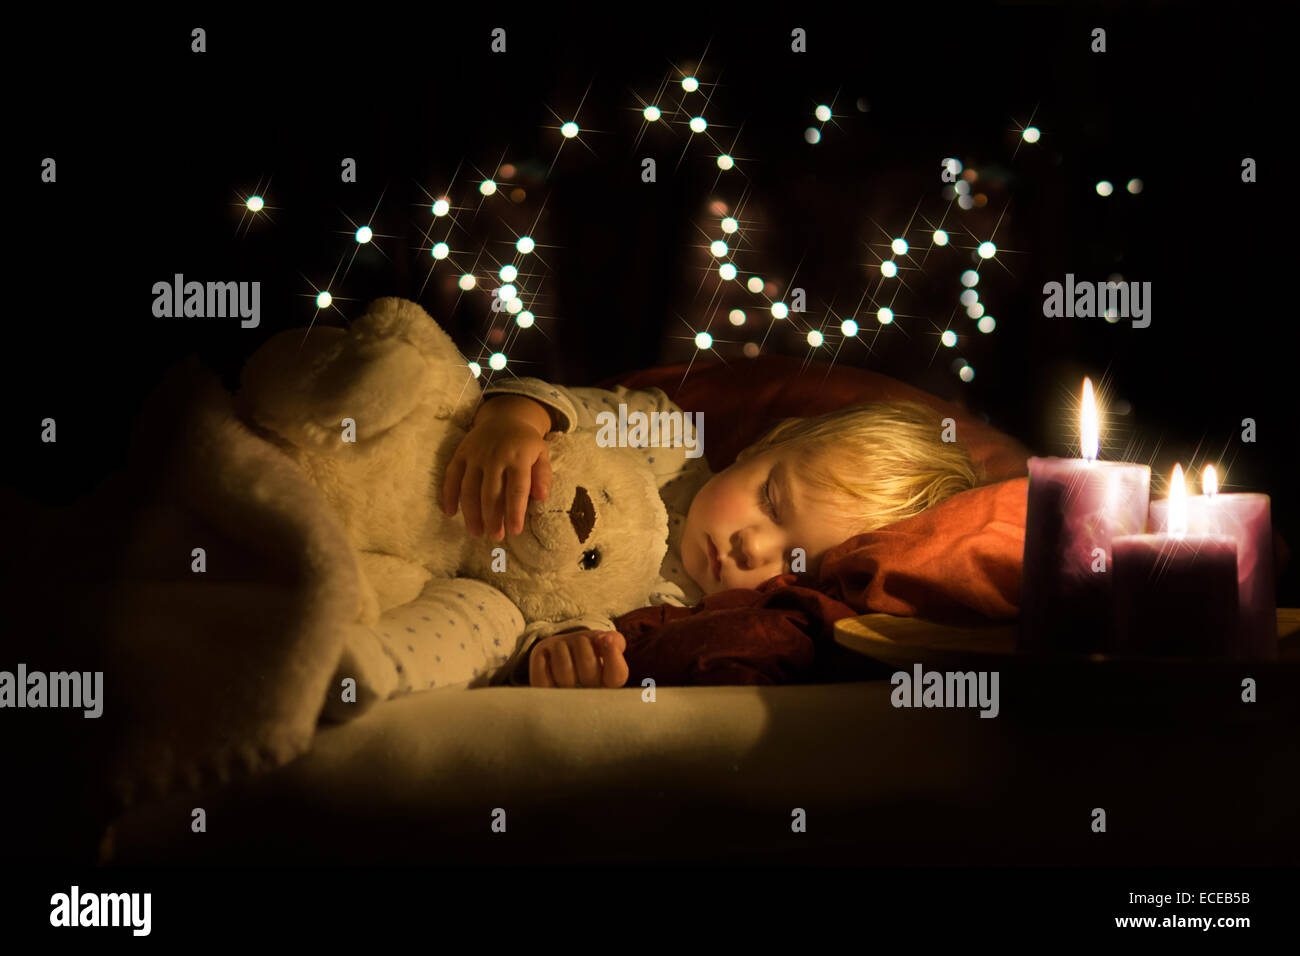 Boy asleep with teddy and warm candle light - Stock Image